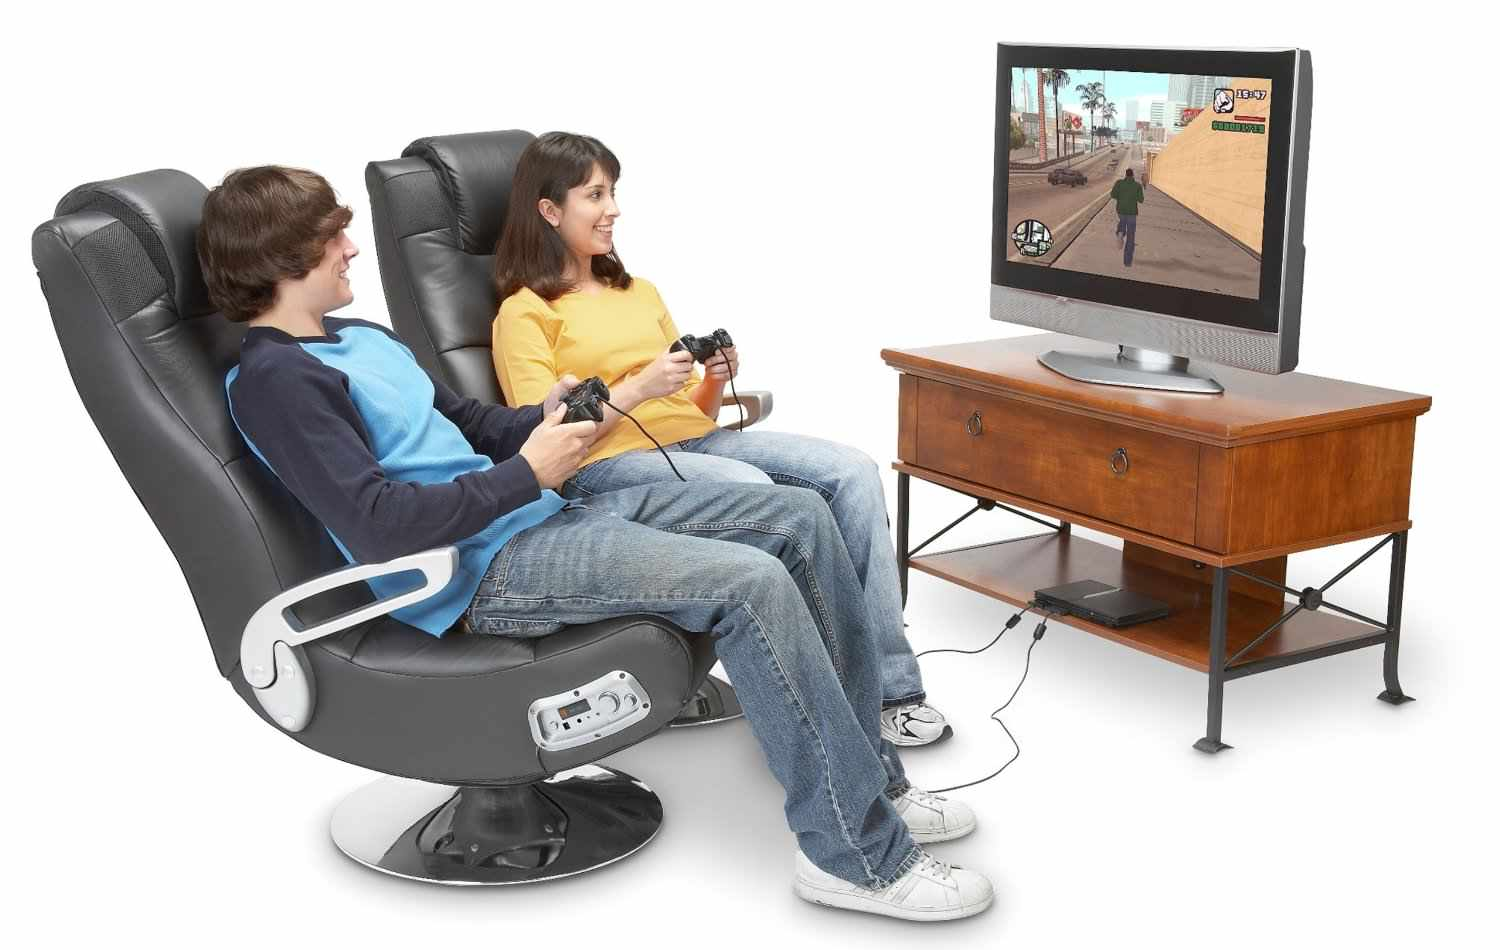 Groovy Best Gaming Chairs Of 2019 Reviews Top Picks Evergreenethics Interior Chair Design Evergreenethicsorg